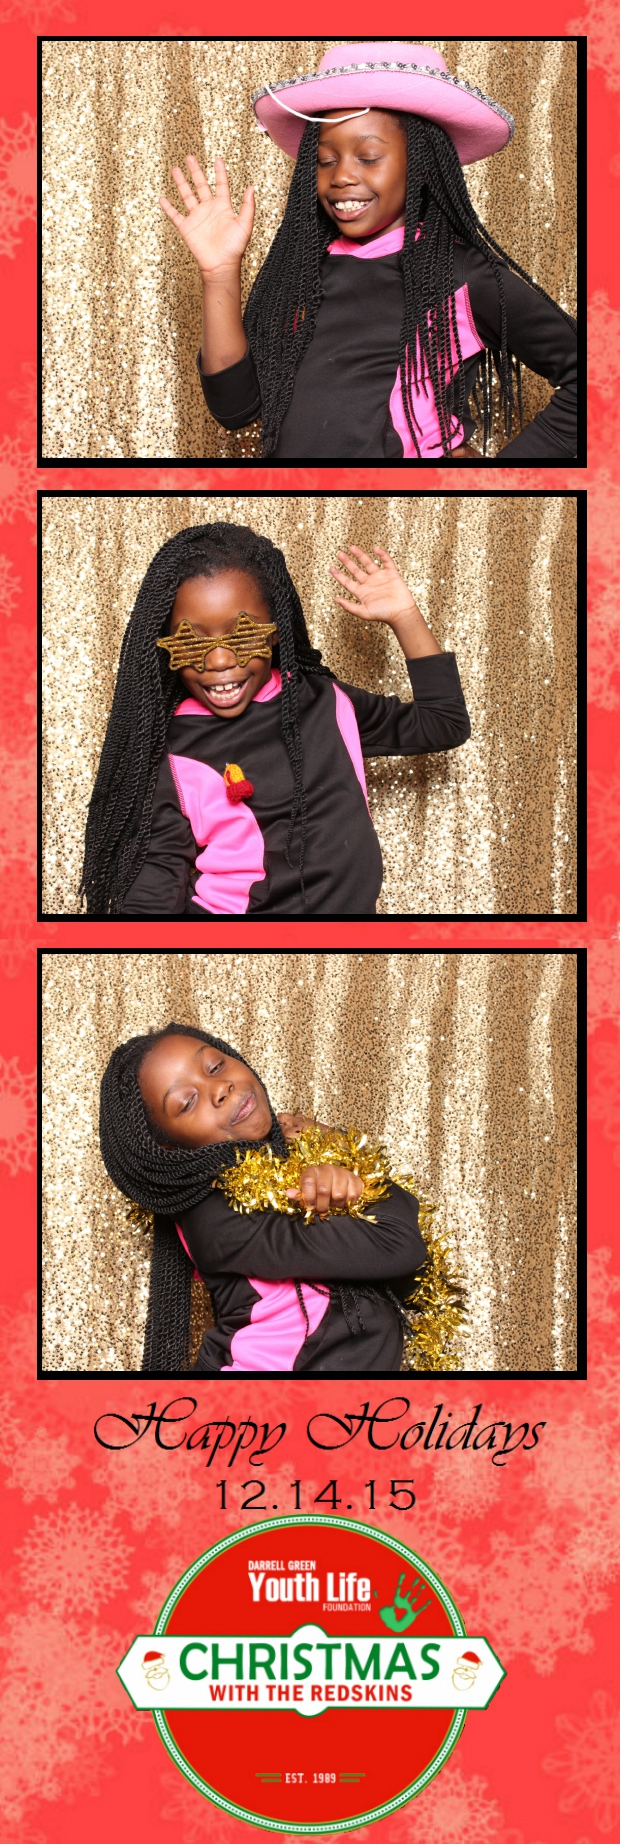 Guest House Events Photo Booth DGYLF Strips (58).jpg